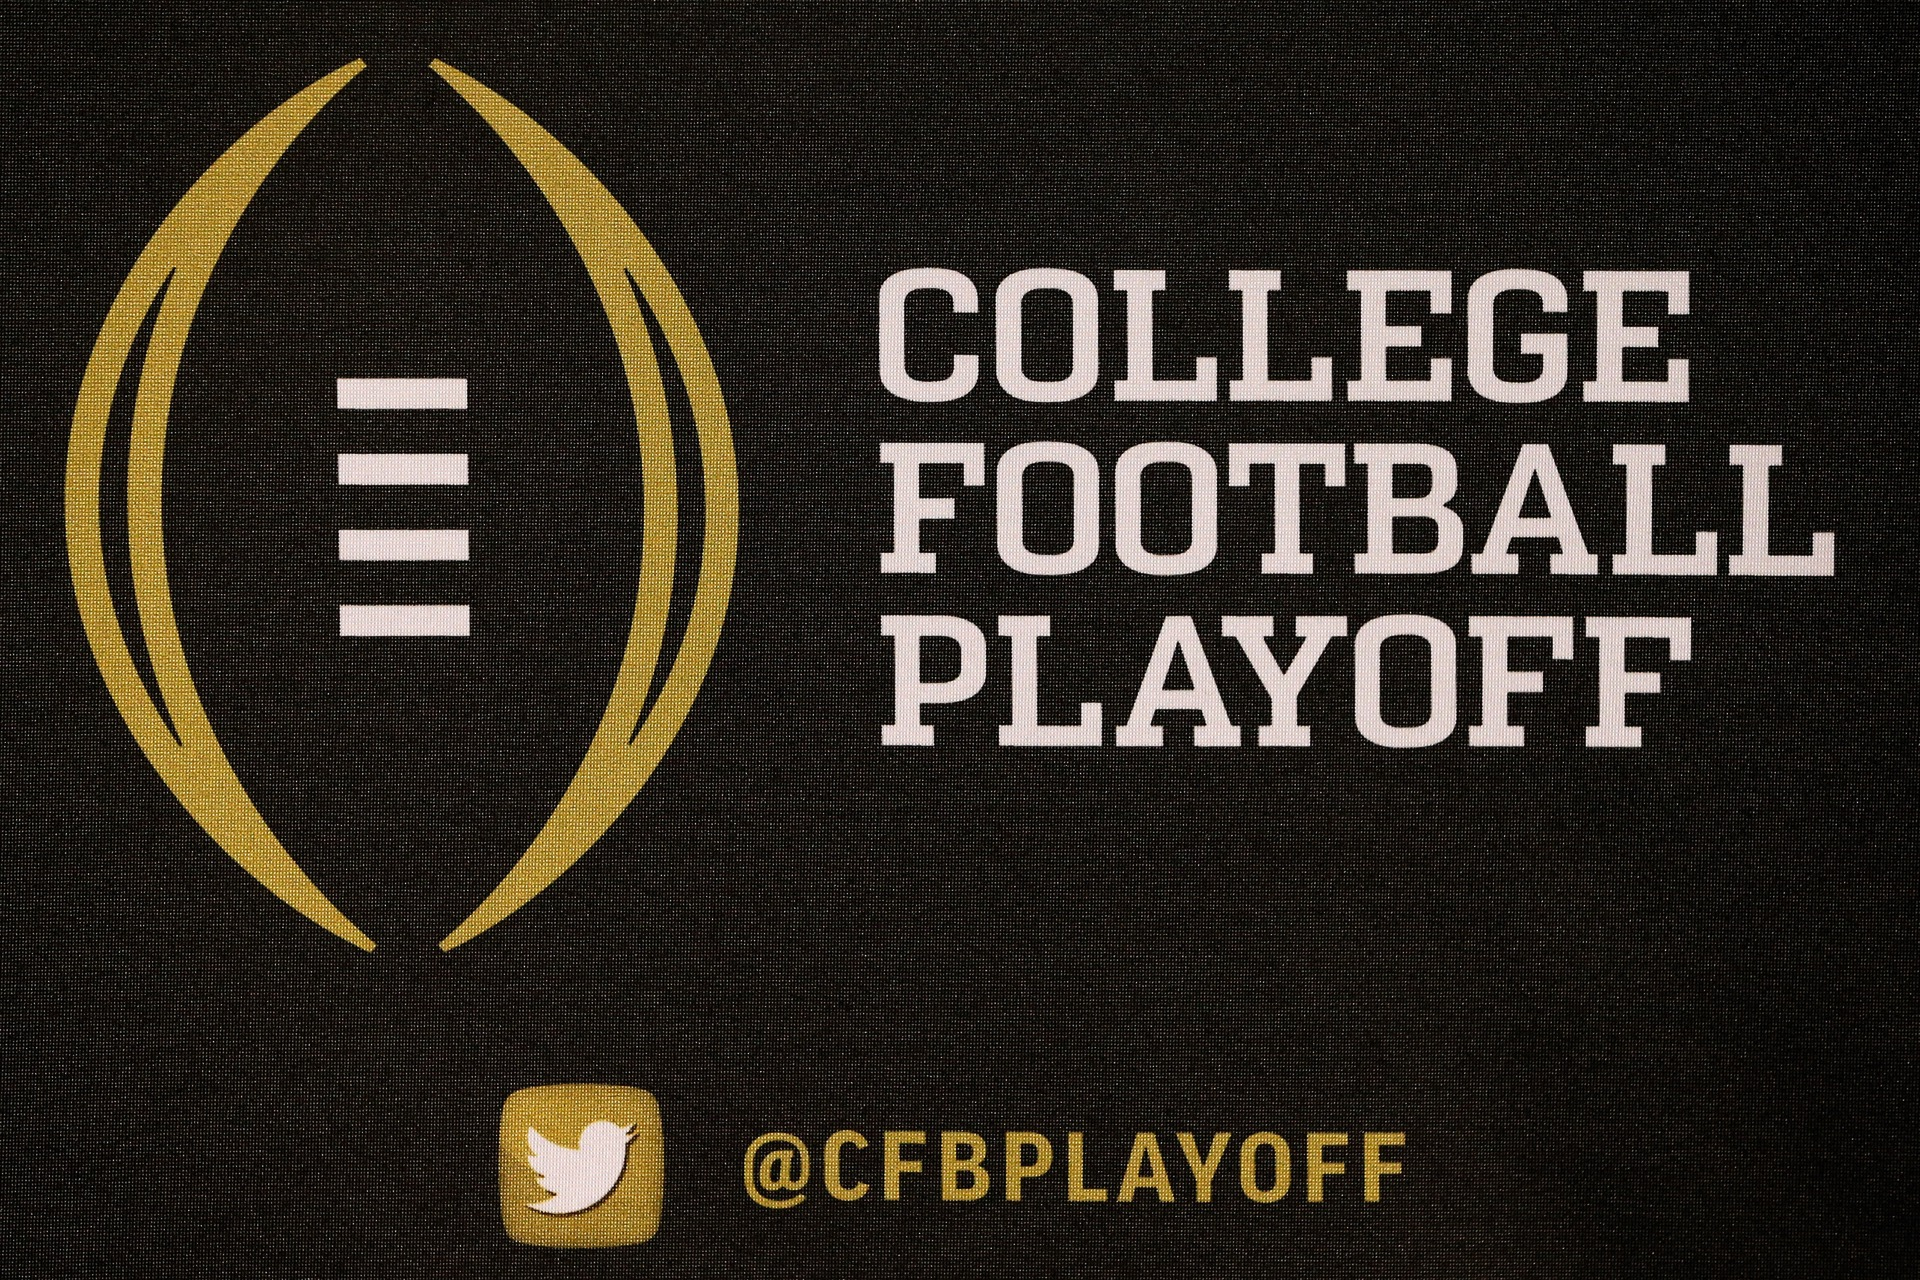 college football playoff selection committee football tv coverage today